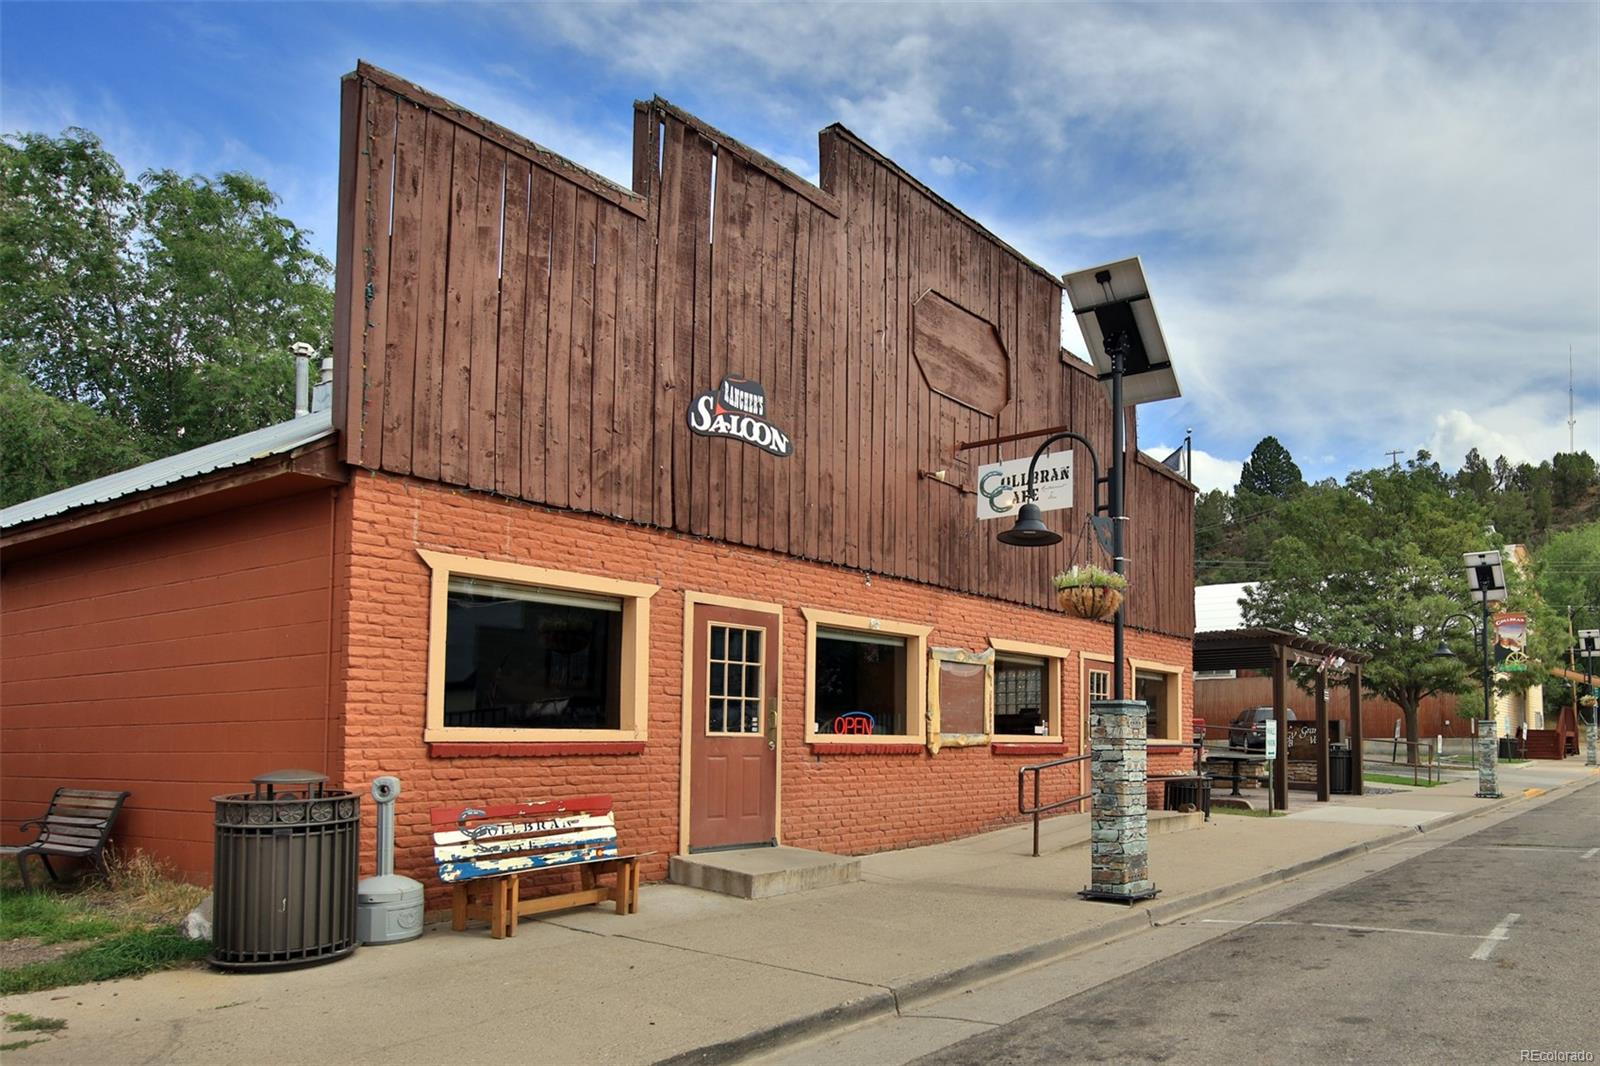 108 Main Street, Collbran, CO 81624 - Collbran, CO real estate listing